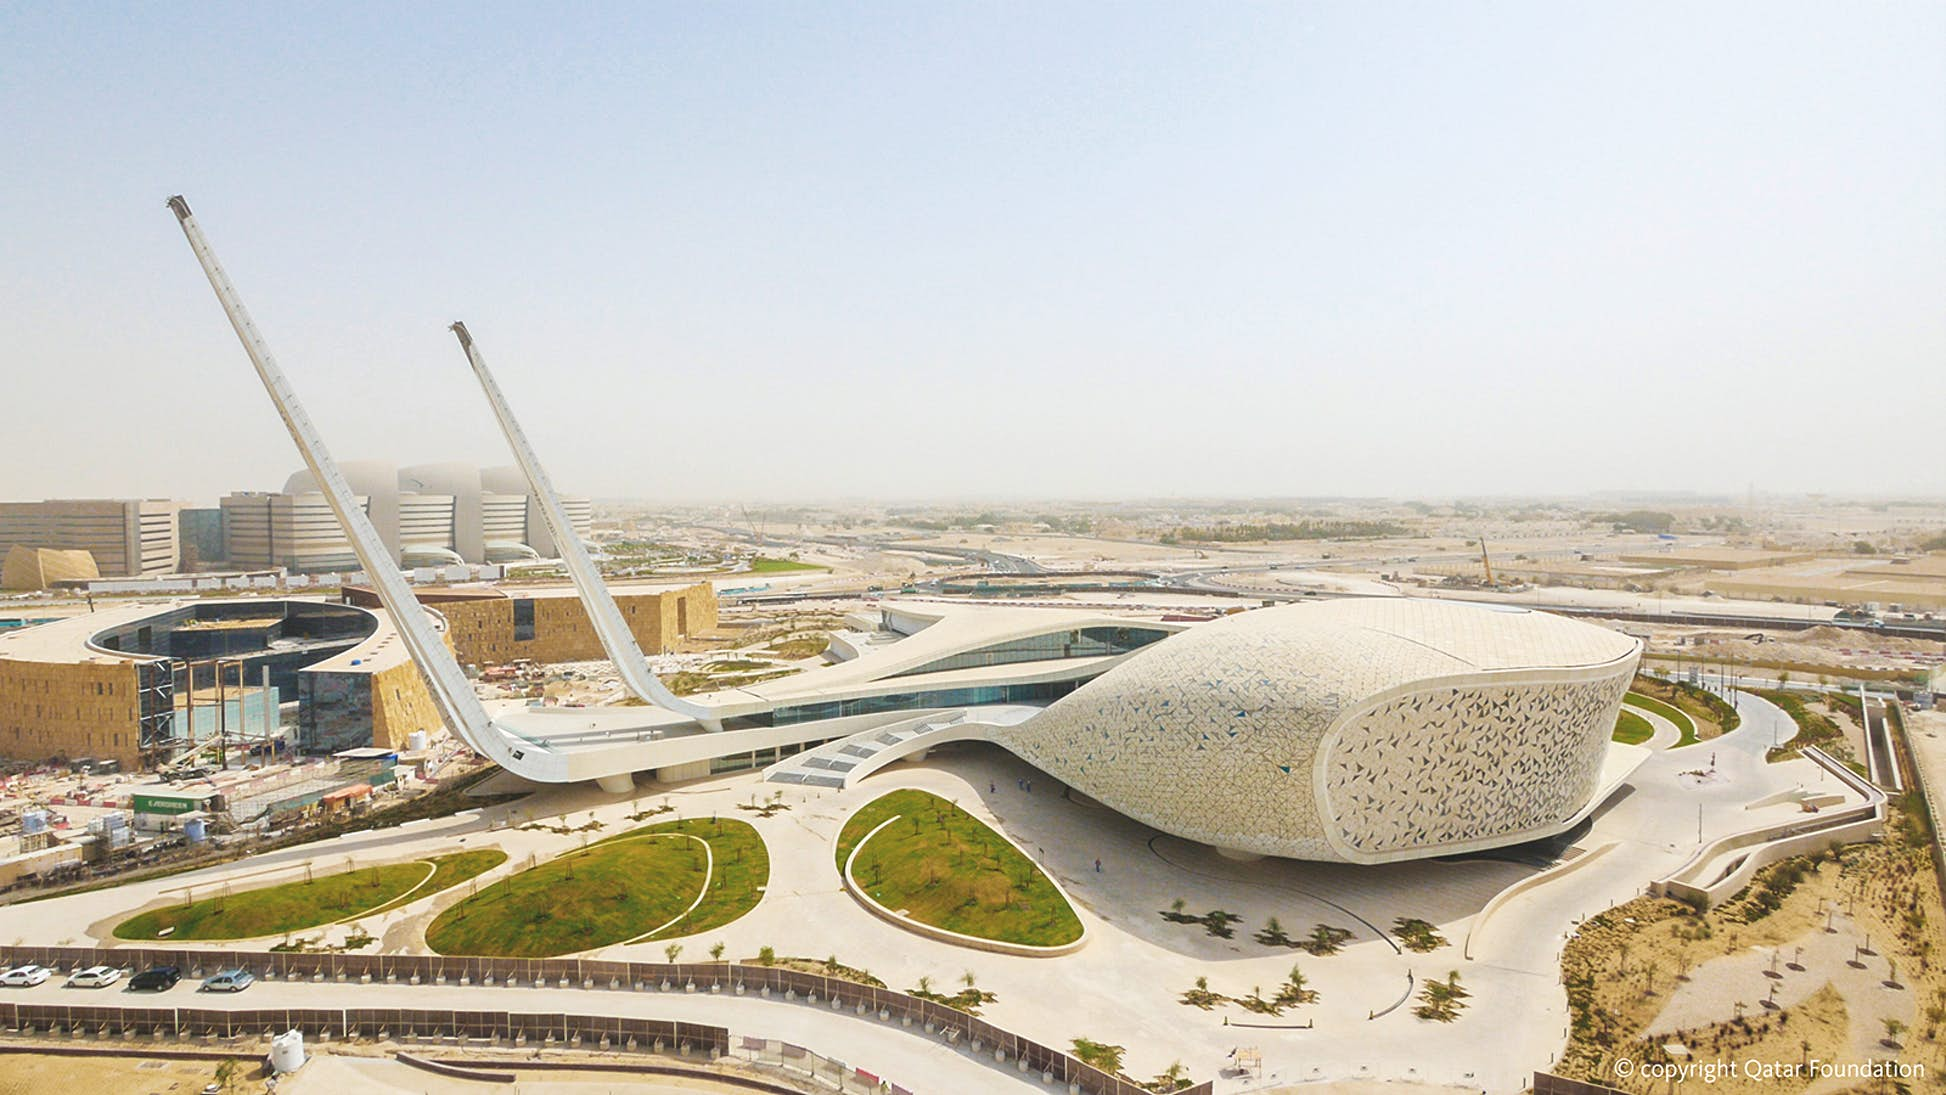 Observers of the curvaceous Qatar Faculty of Islamic Studies could be forgiven for expecting the structure to take off © Qatar Foundation